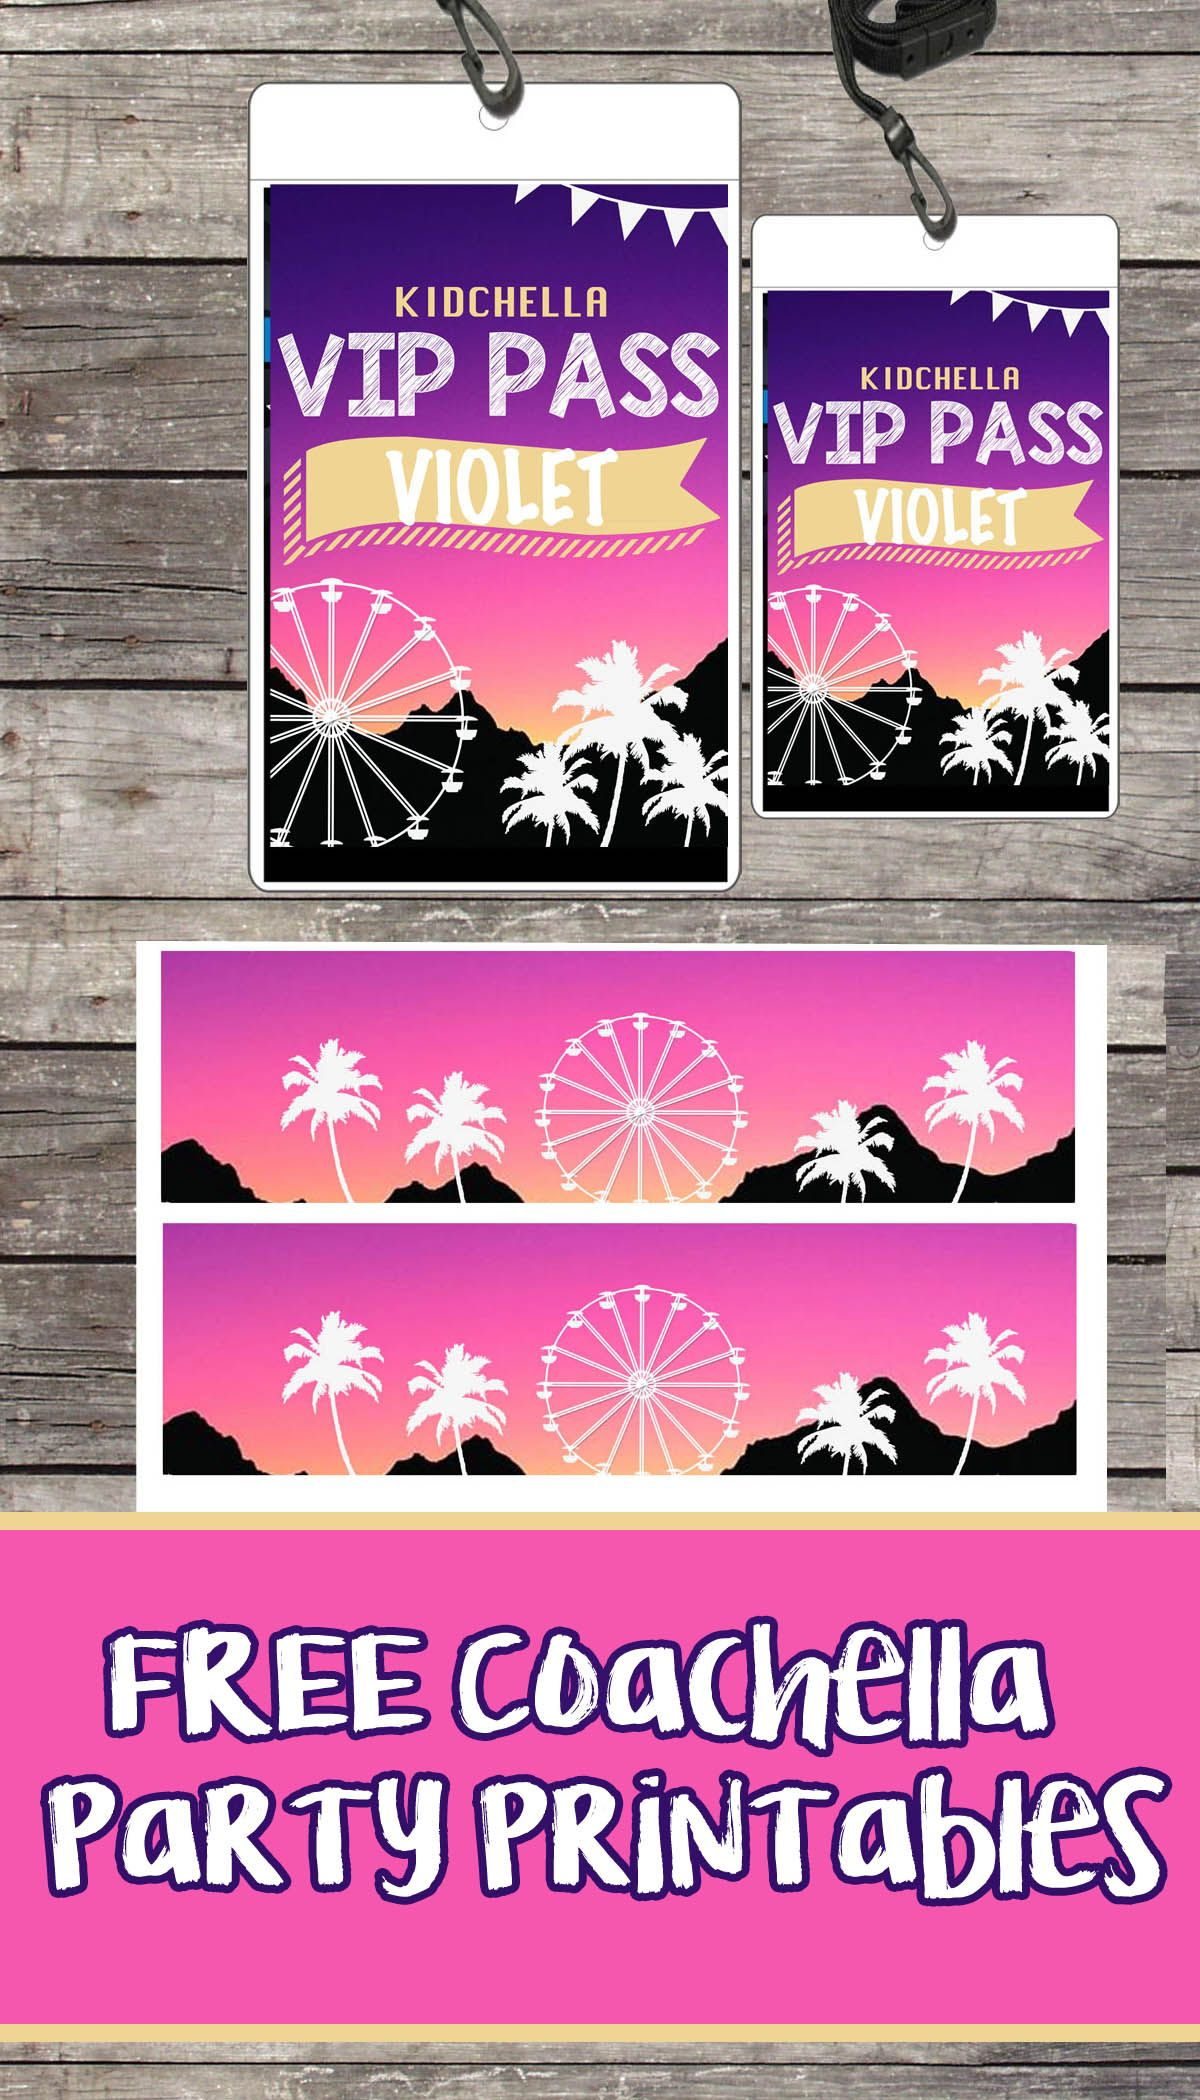 photograph about Free Printable Vip Pass Template identify No cost Coaca Birthday Occasion Printable Documents Banner VIP